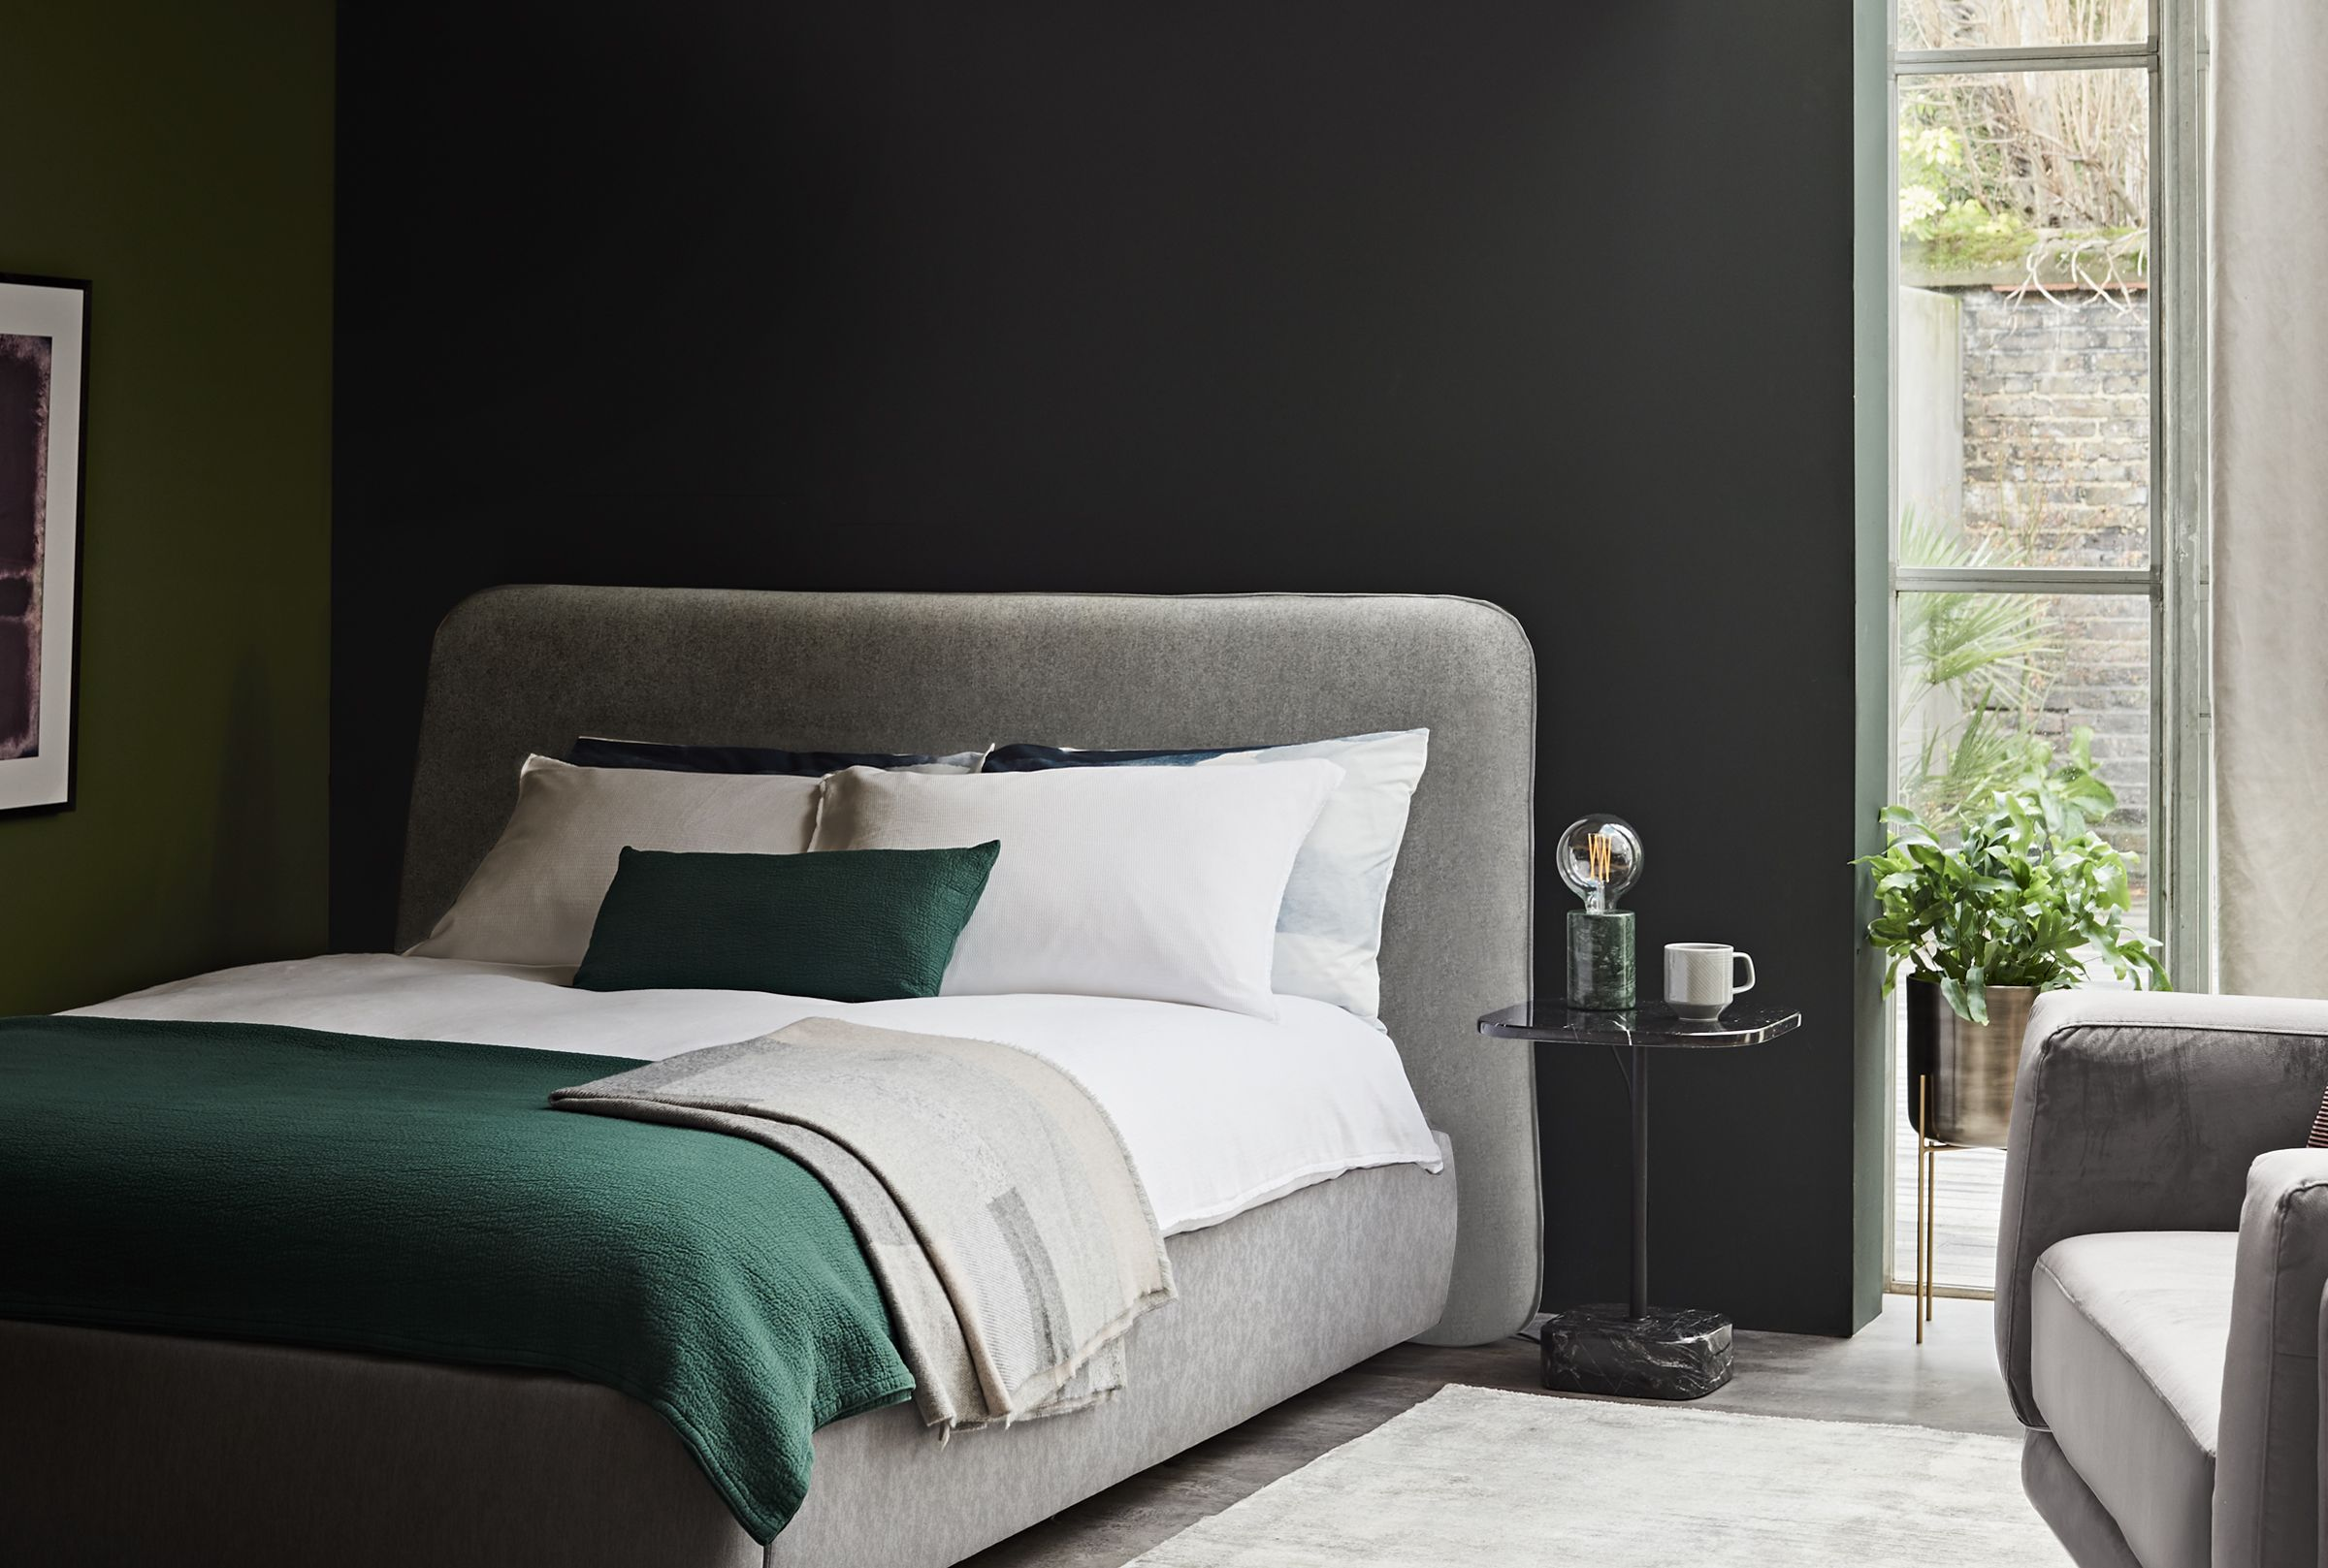 How to style the John Lewis interior design trends for A/W 3